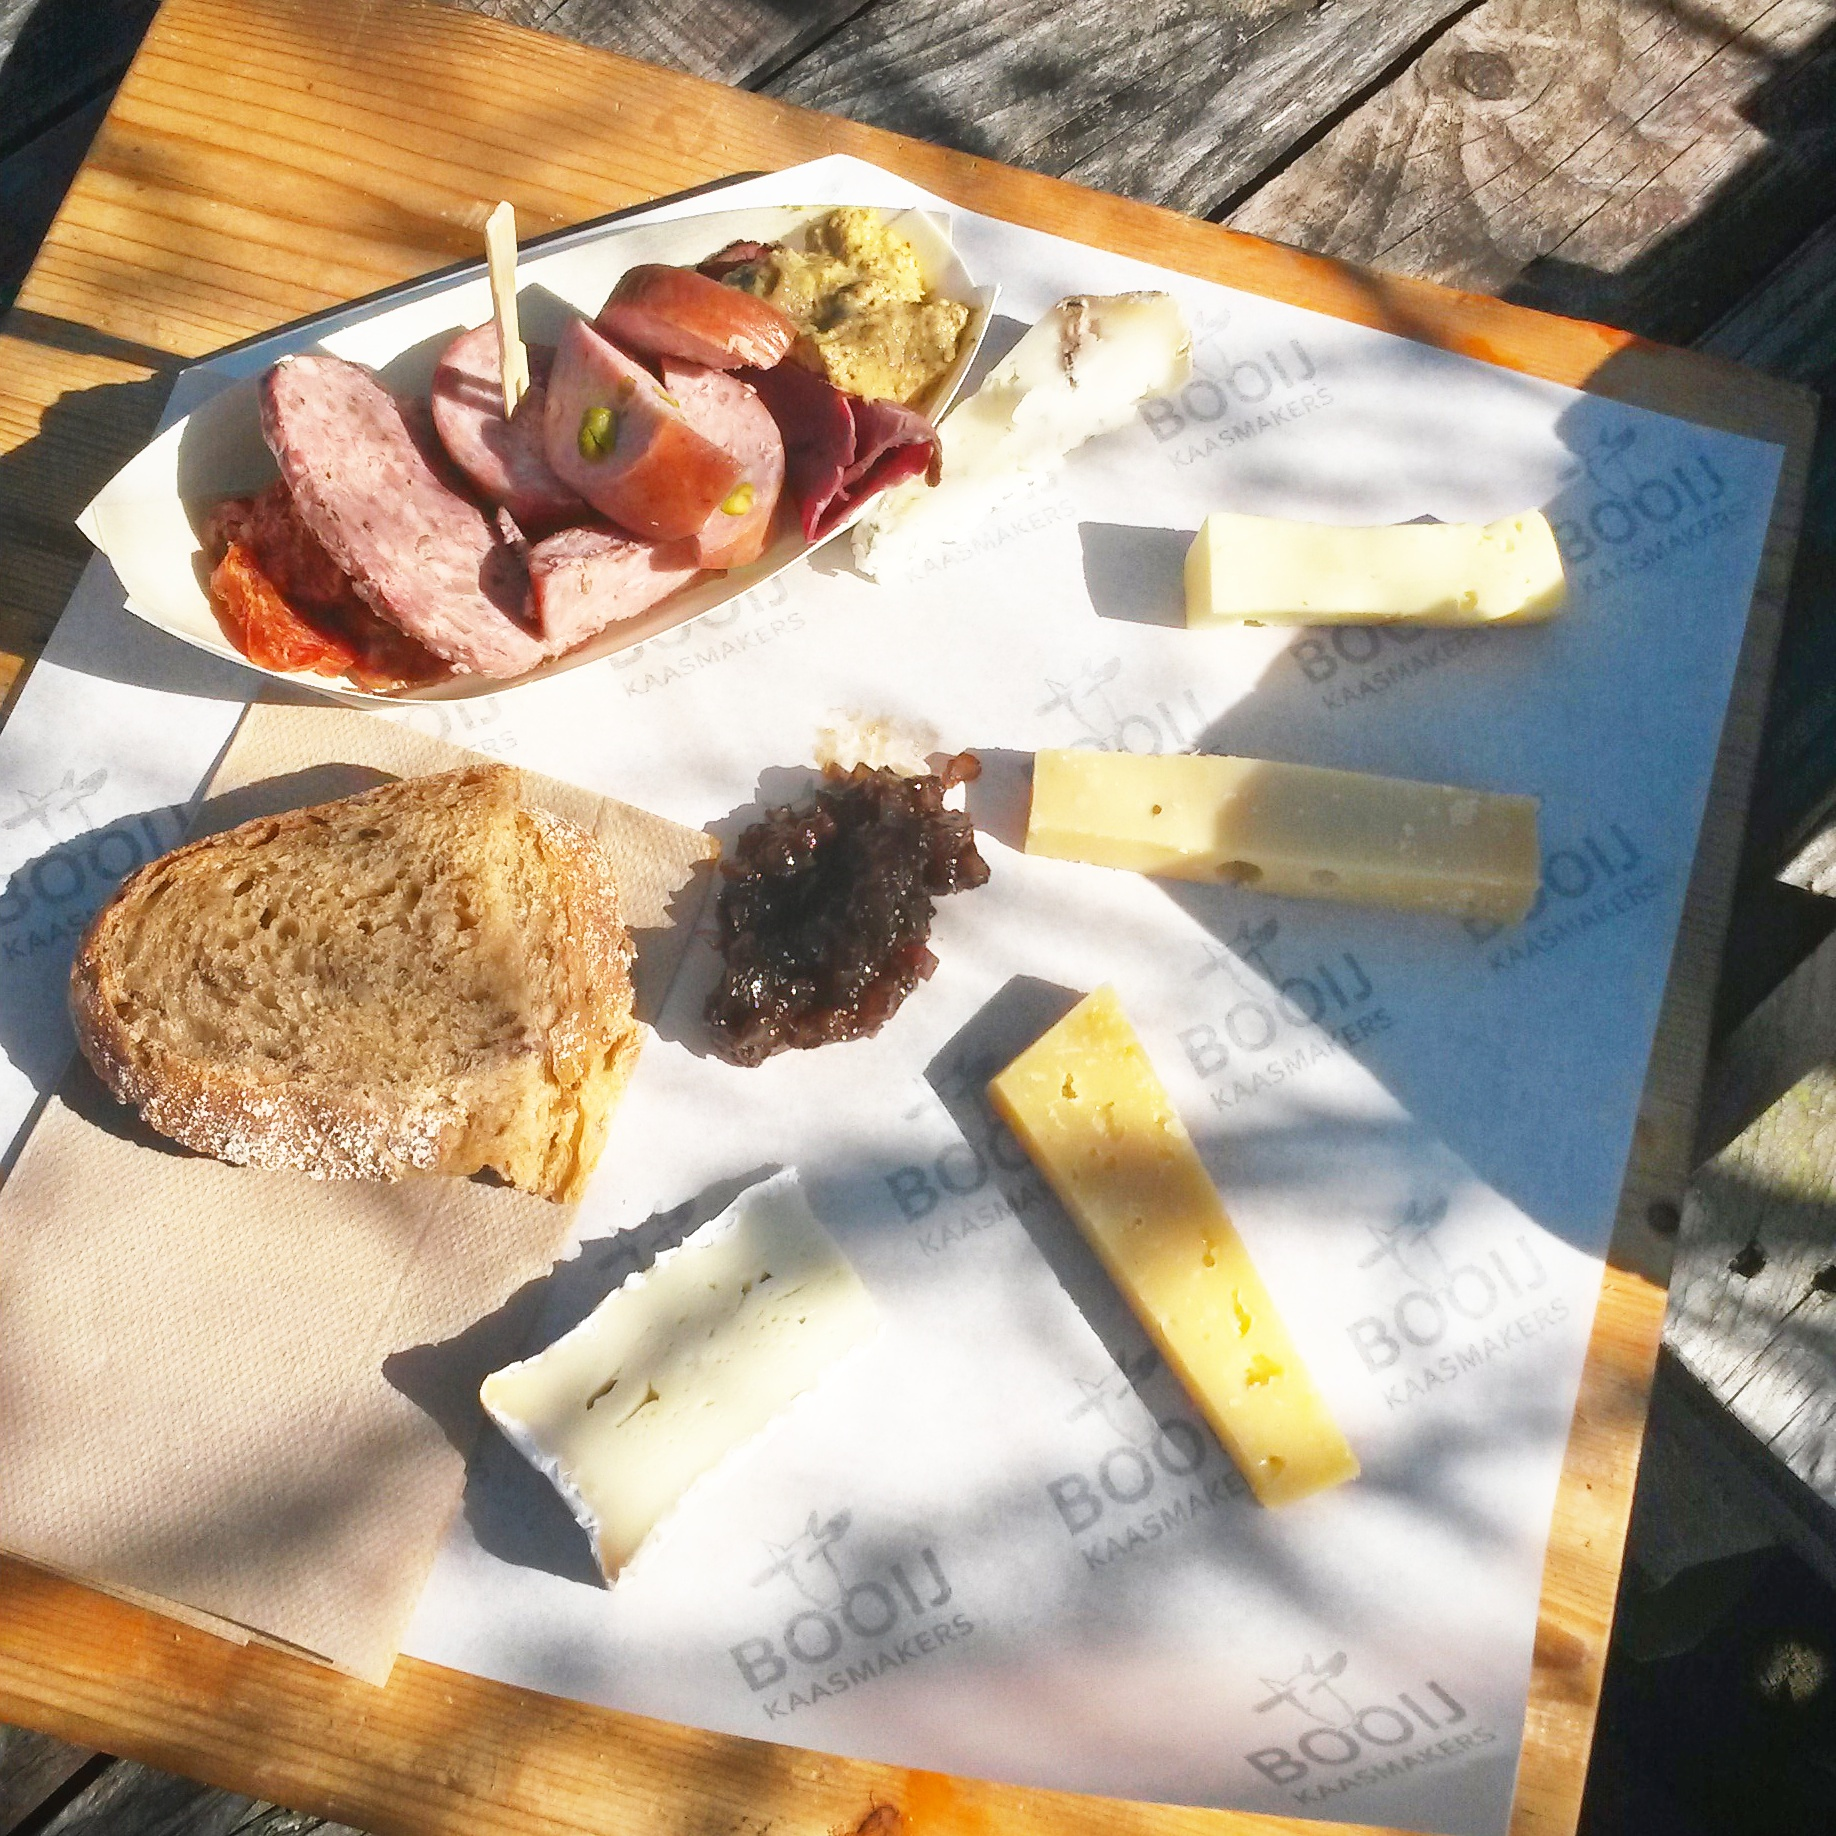 Fenix Food Factory's cheese and charcuterie board